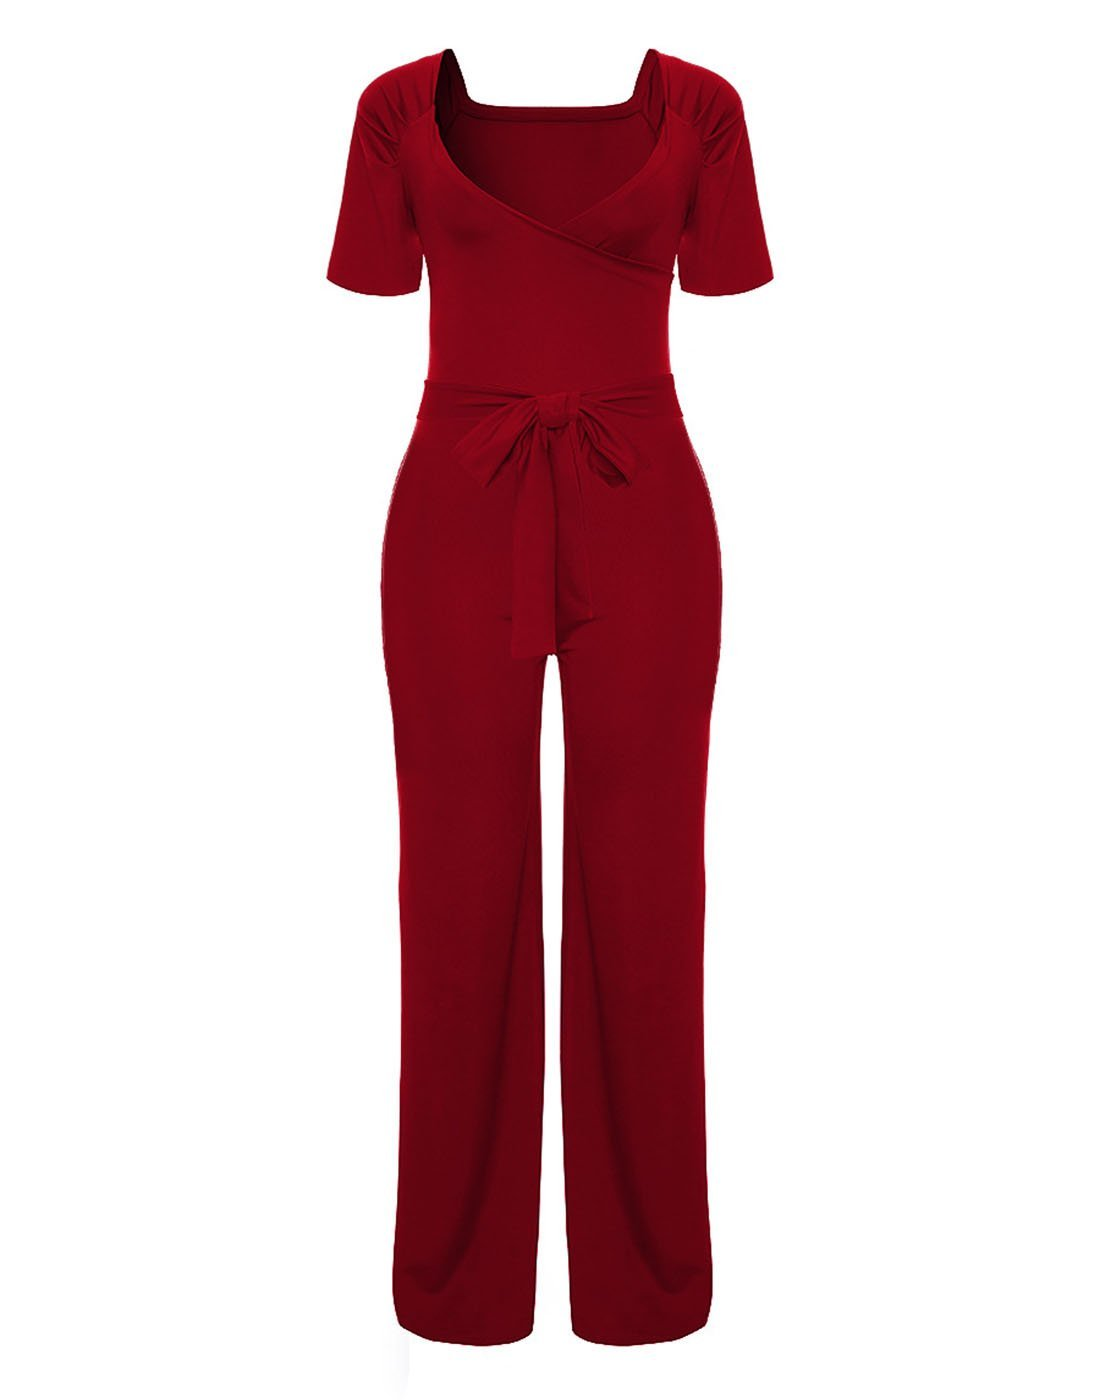 Tiaoqi Women's Wide Leg Jumpsuits Solid Color Sexy V Neck Wide Leg Long Pants Rompers Belt (Wine red, S)